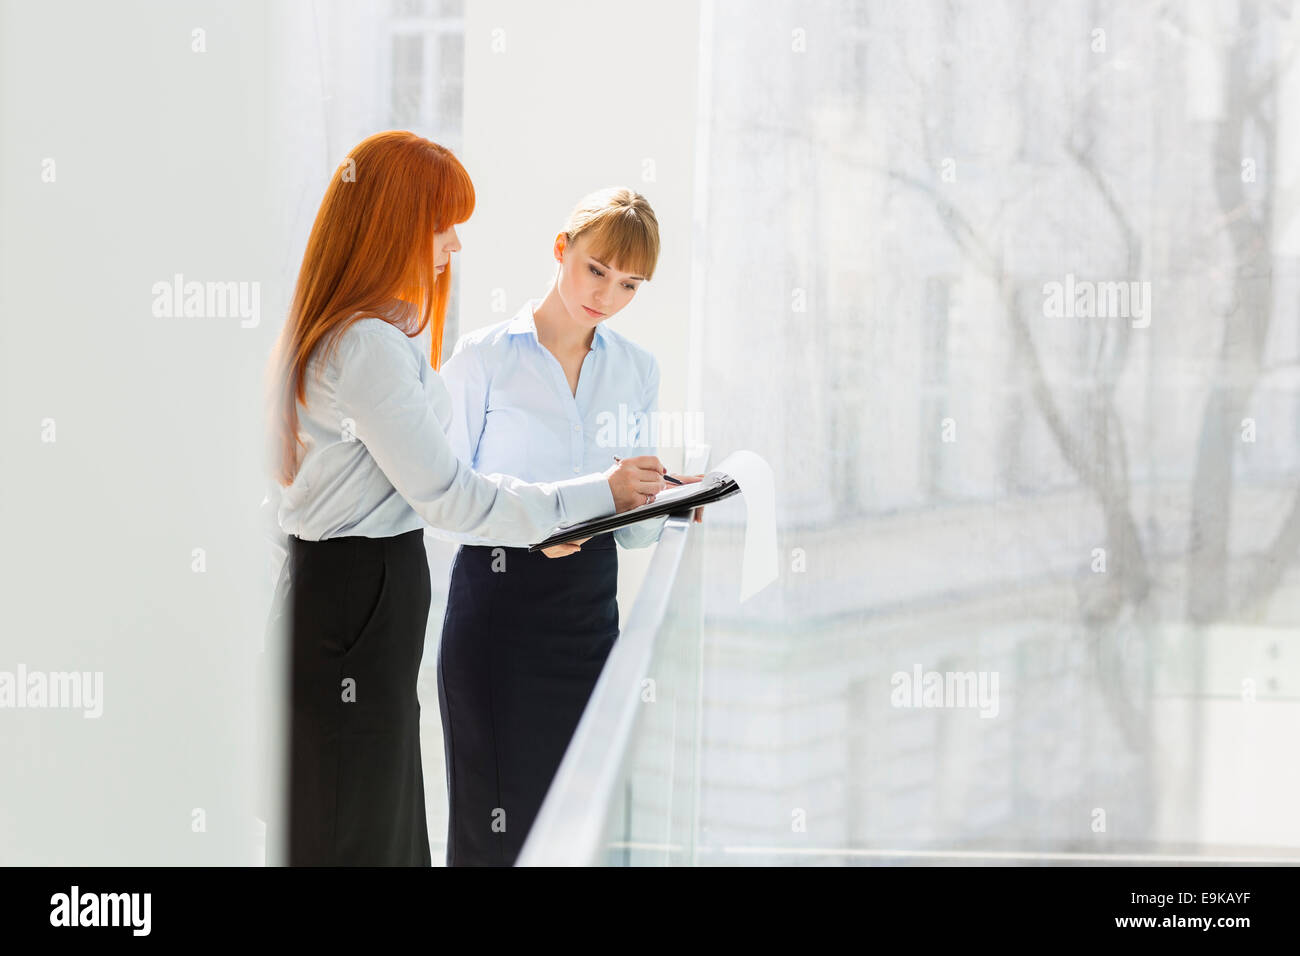 Businesswomen doing paperwork while standing by railing in office - Stock Image